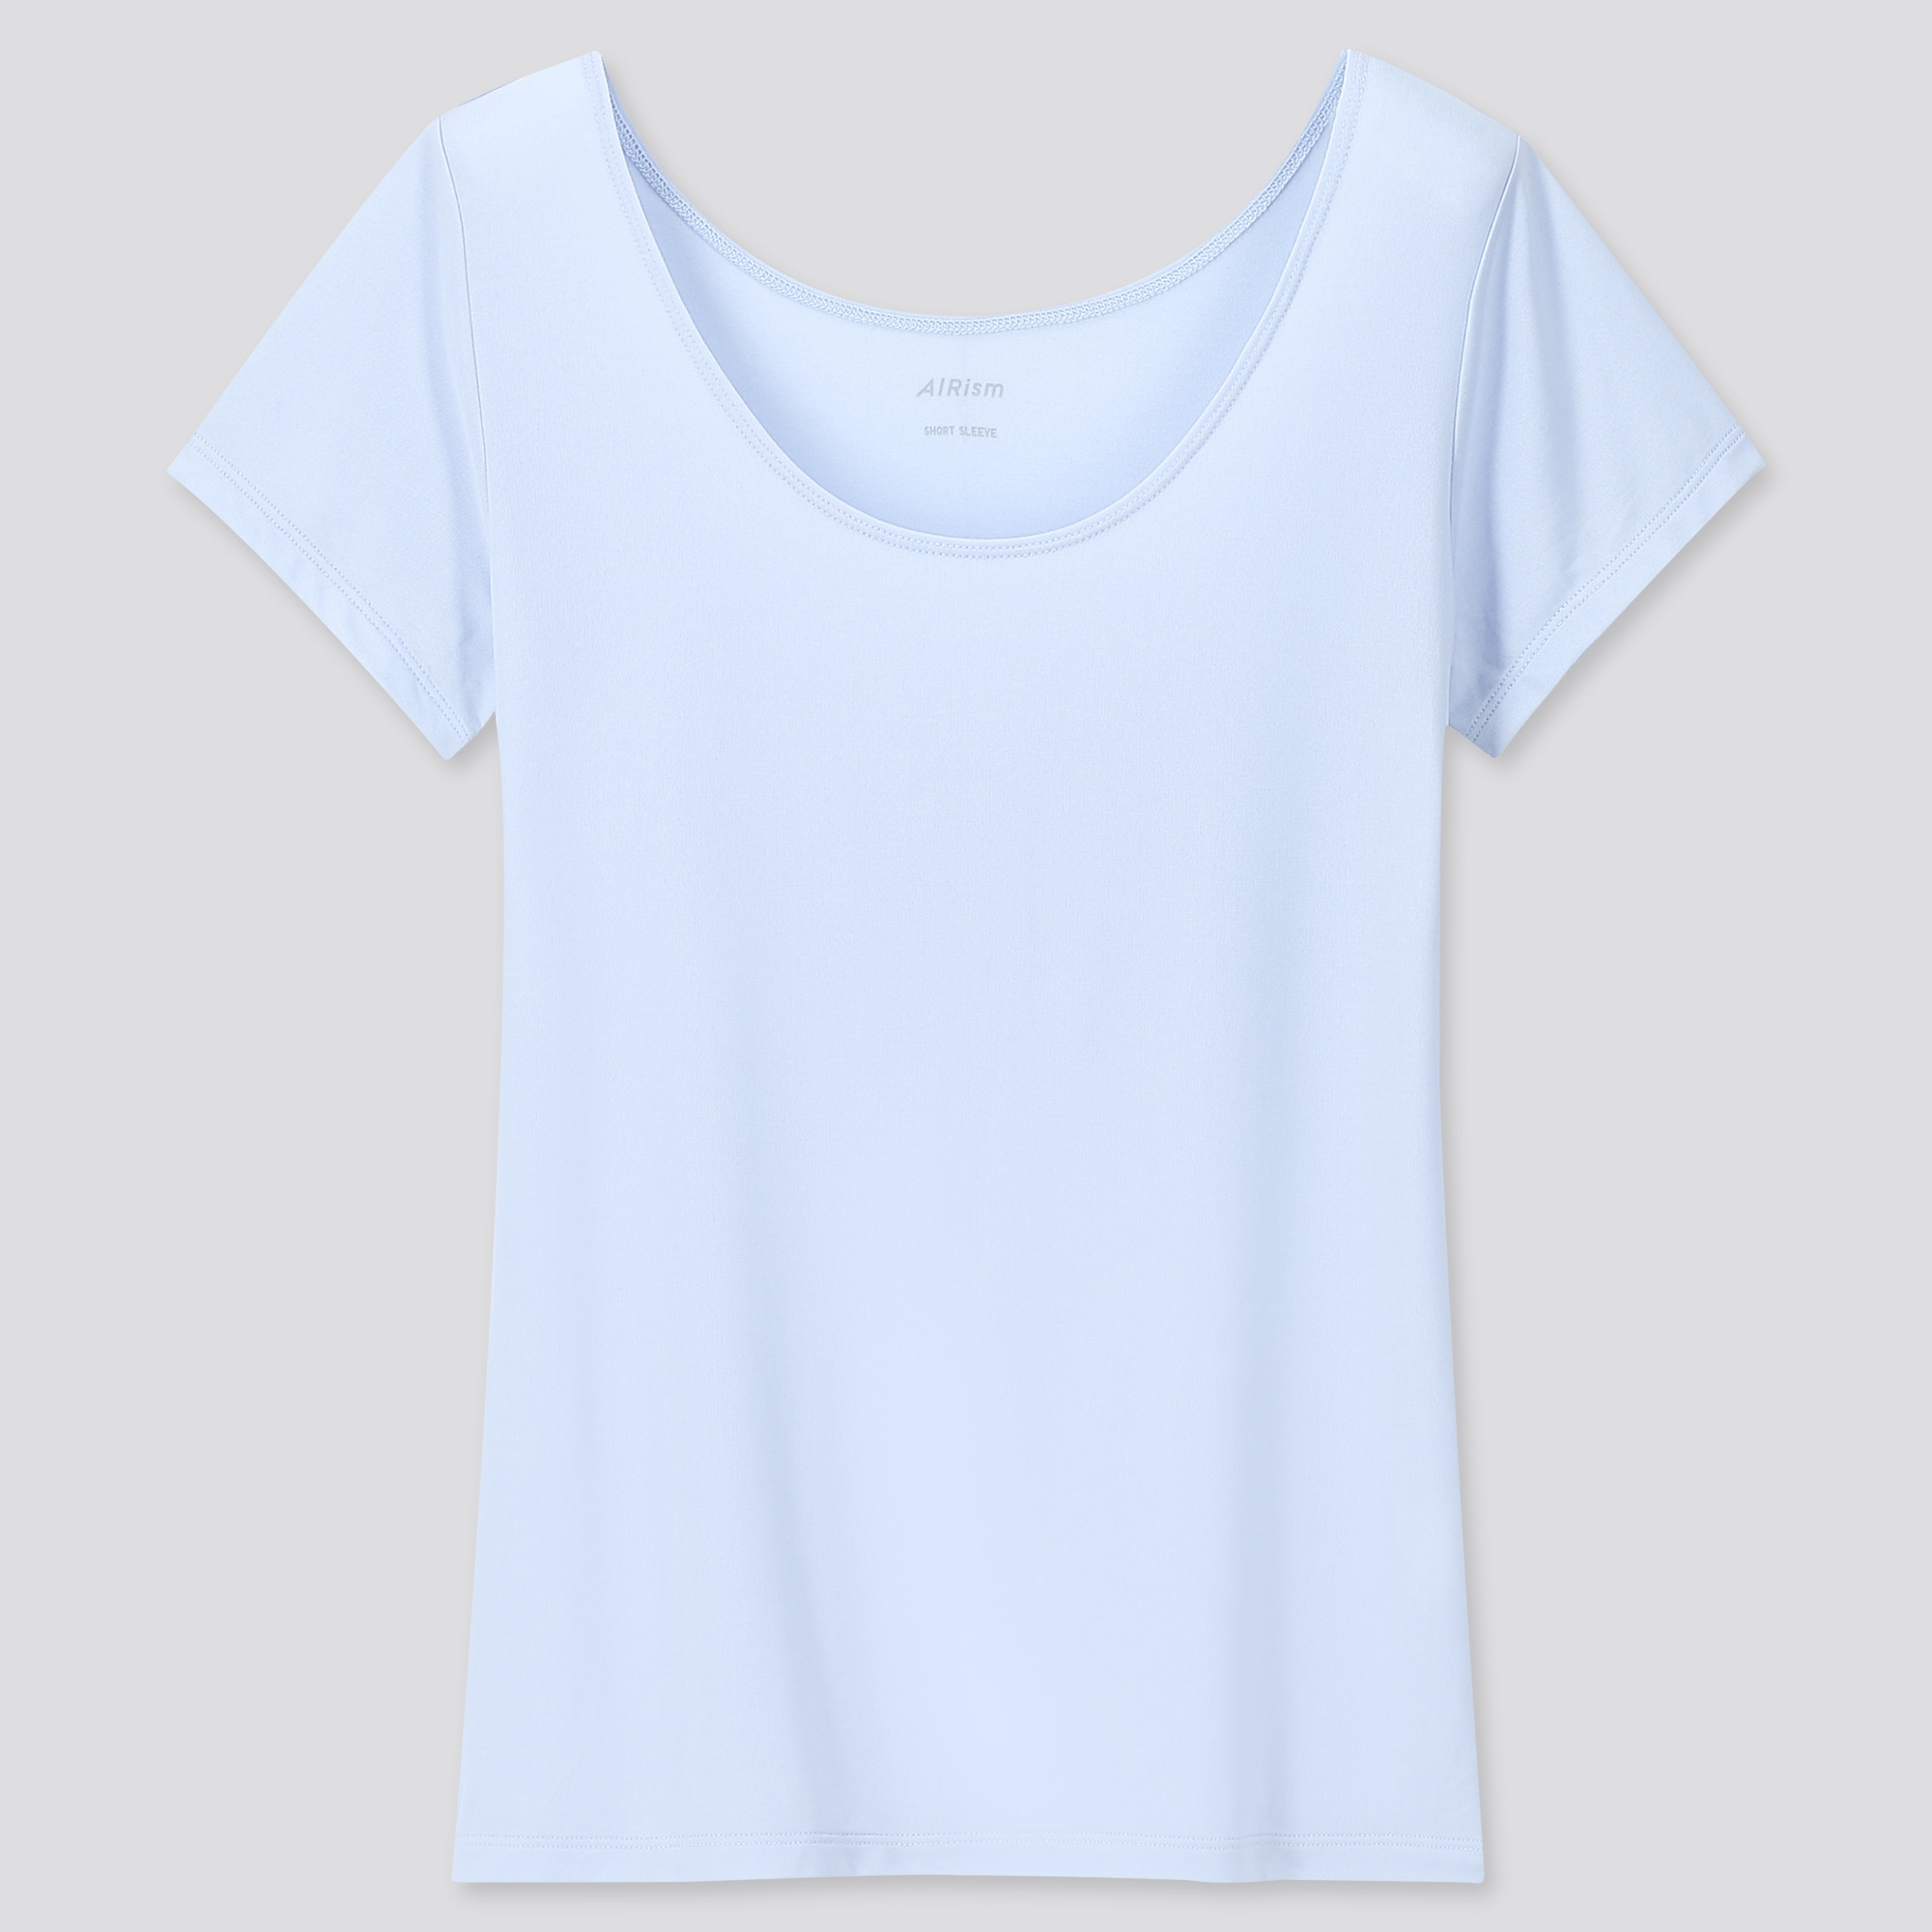 WOMEN AIRism SCOOP NECK SHORT-SLEEVE T-SHIRT